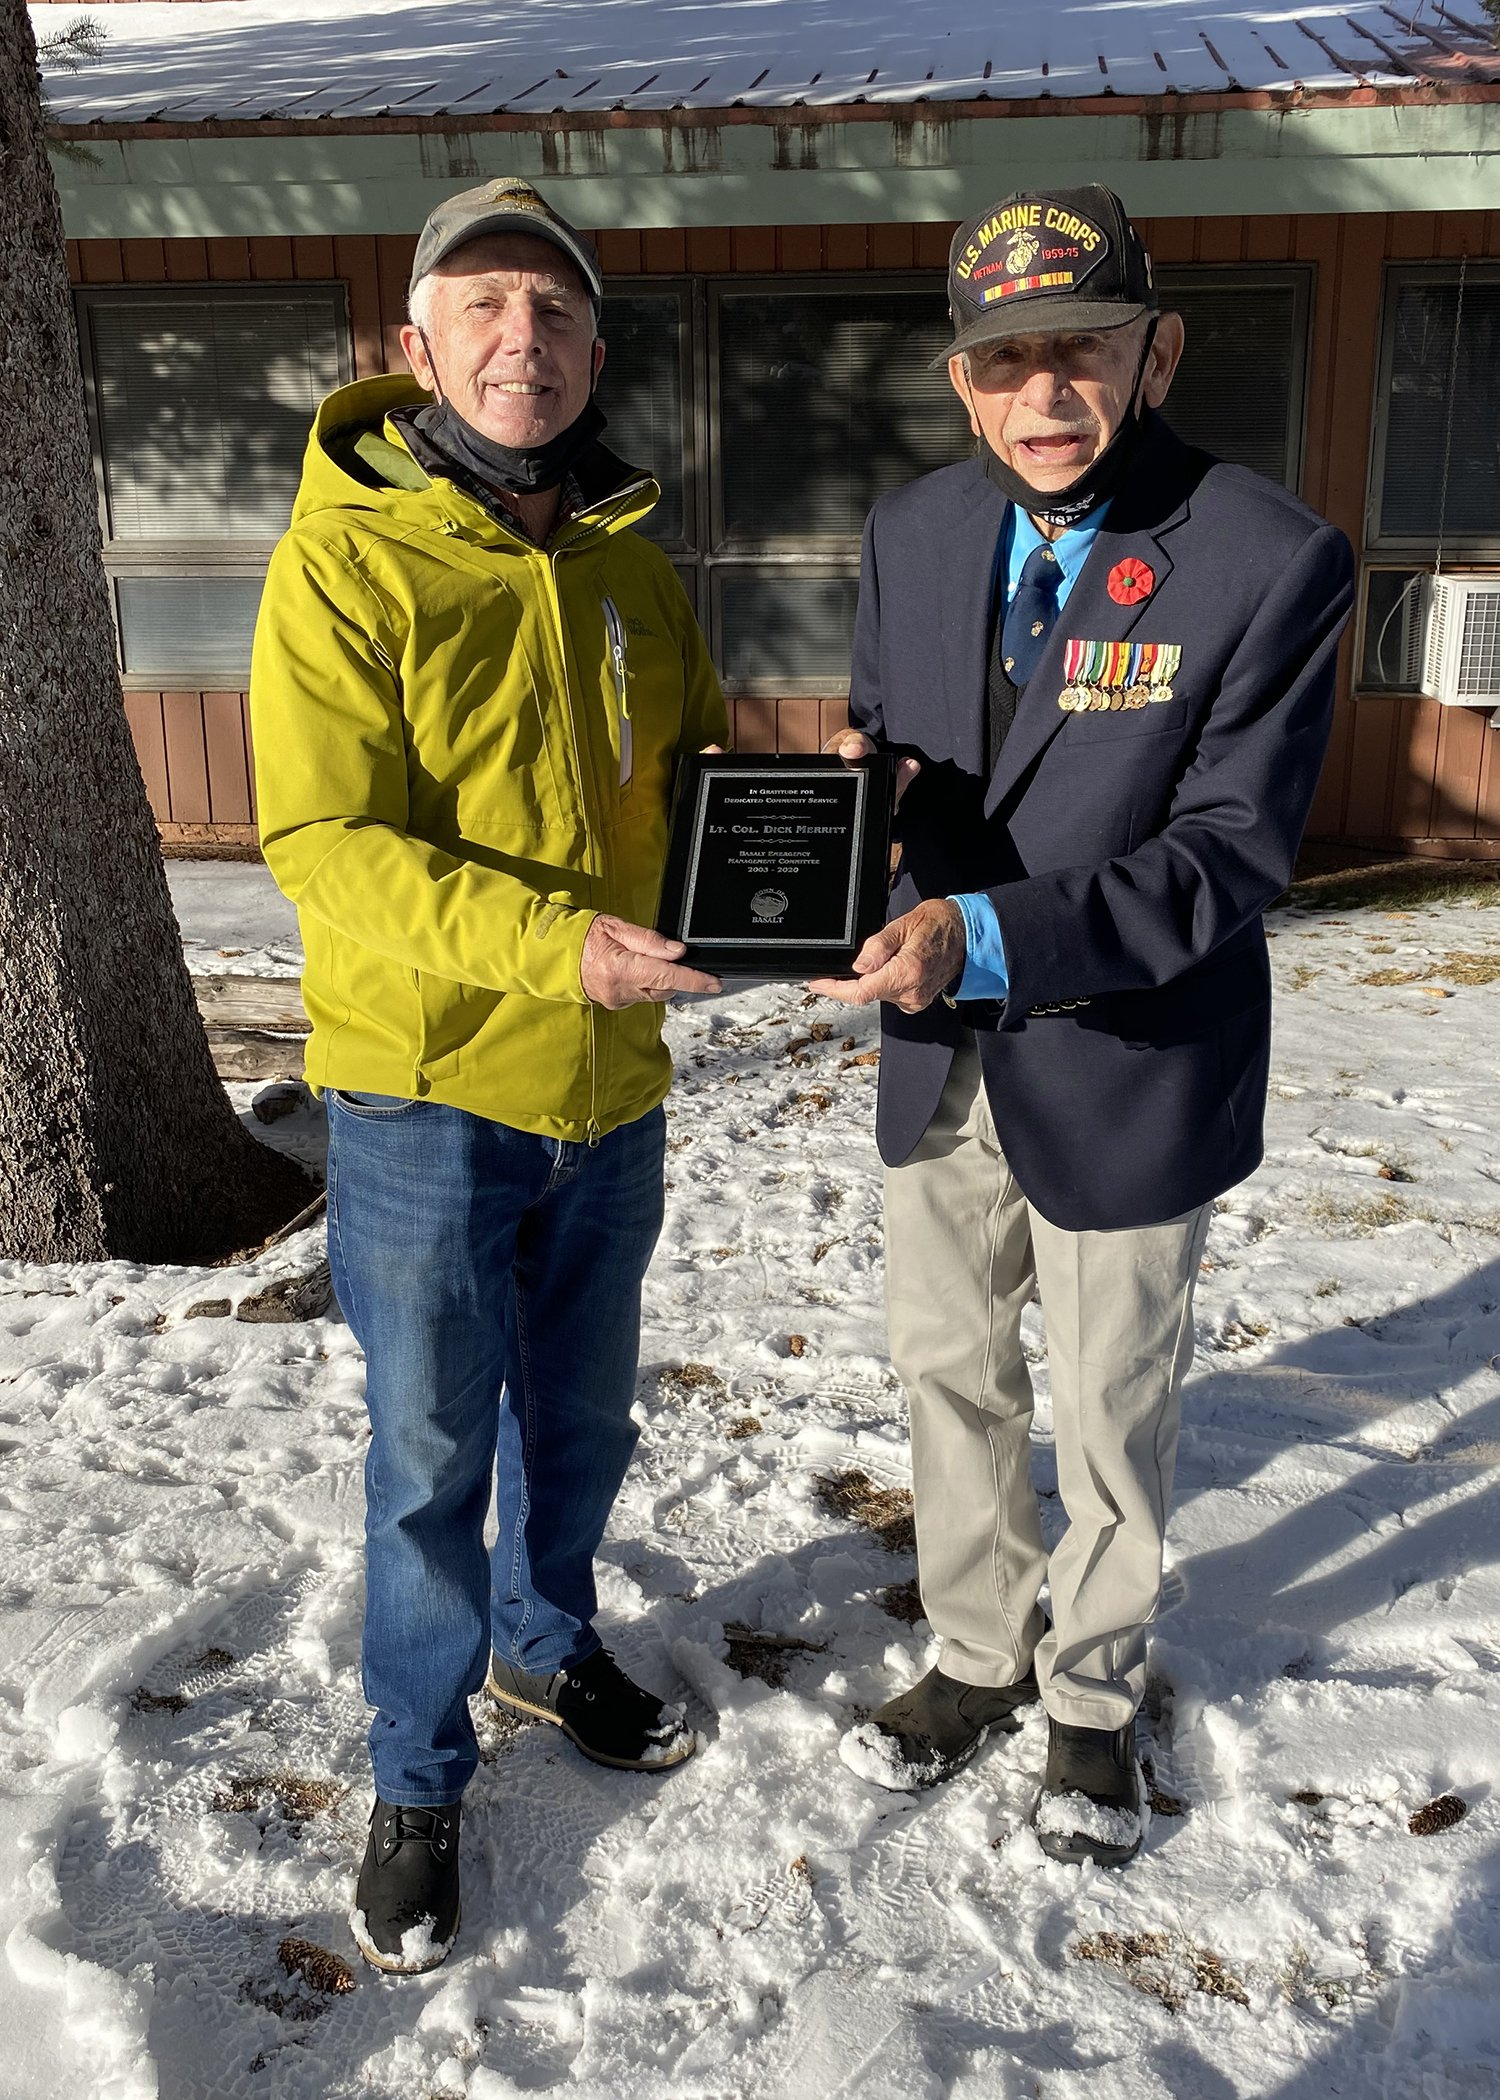 Basalt Mayor Bill Kane (left) presents a plaque for Outstanding Community Service to Lt. Col Richard Merritt. Photo by Roberta McGowan